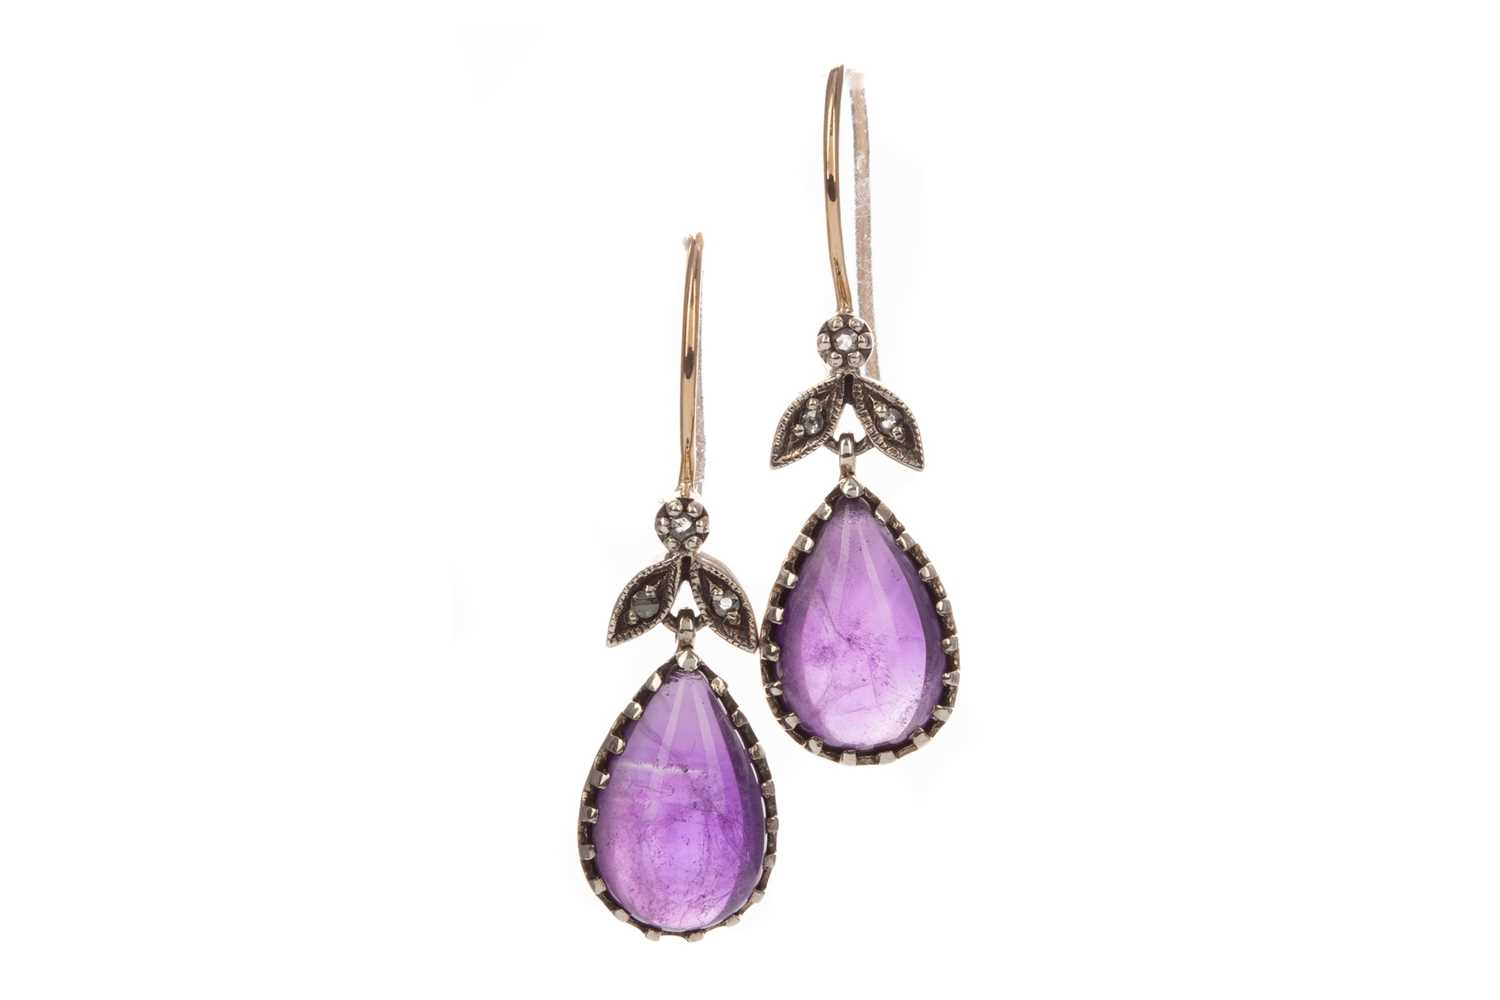 Lot 378 - A PAIR OF AMETHYST AND DIAMOND EARRINGS